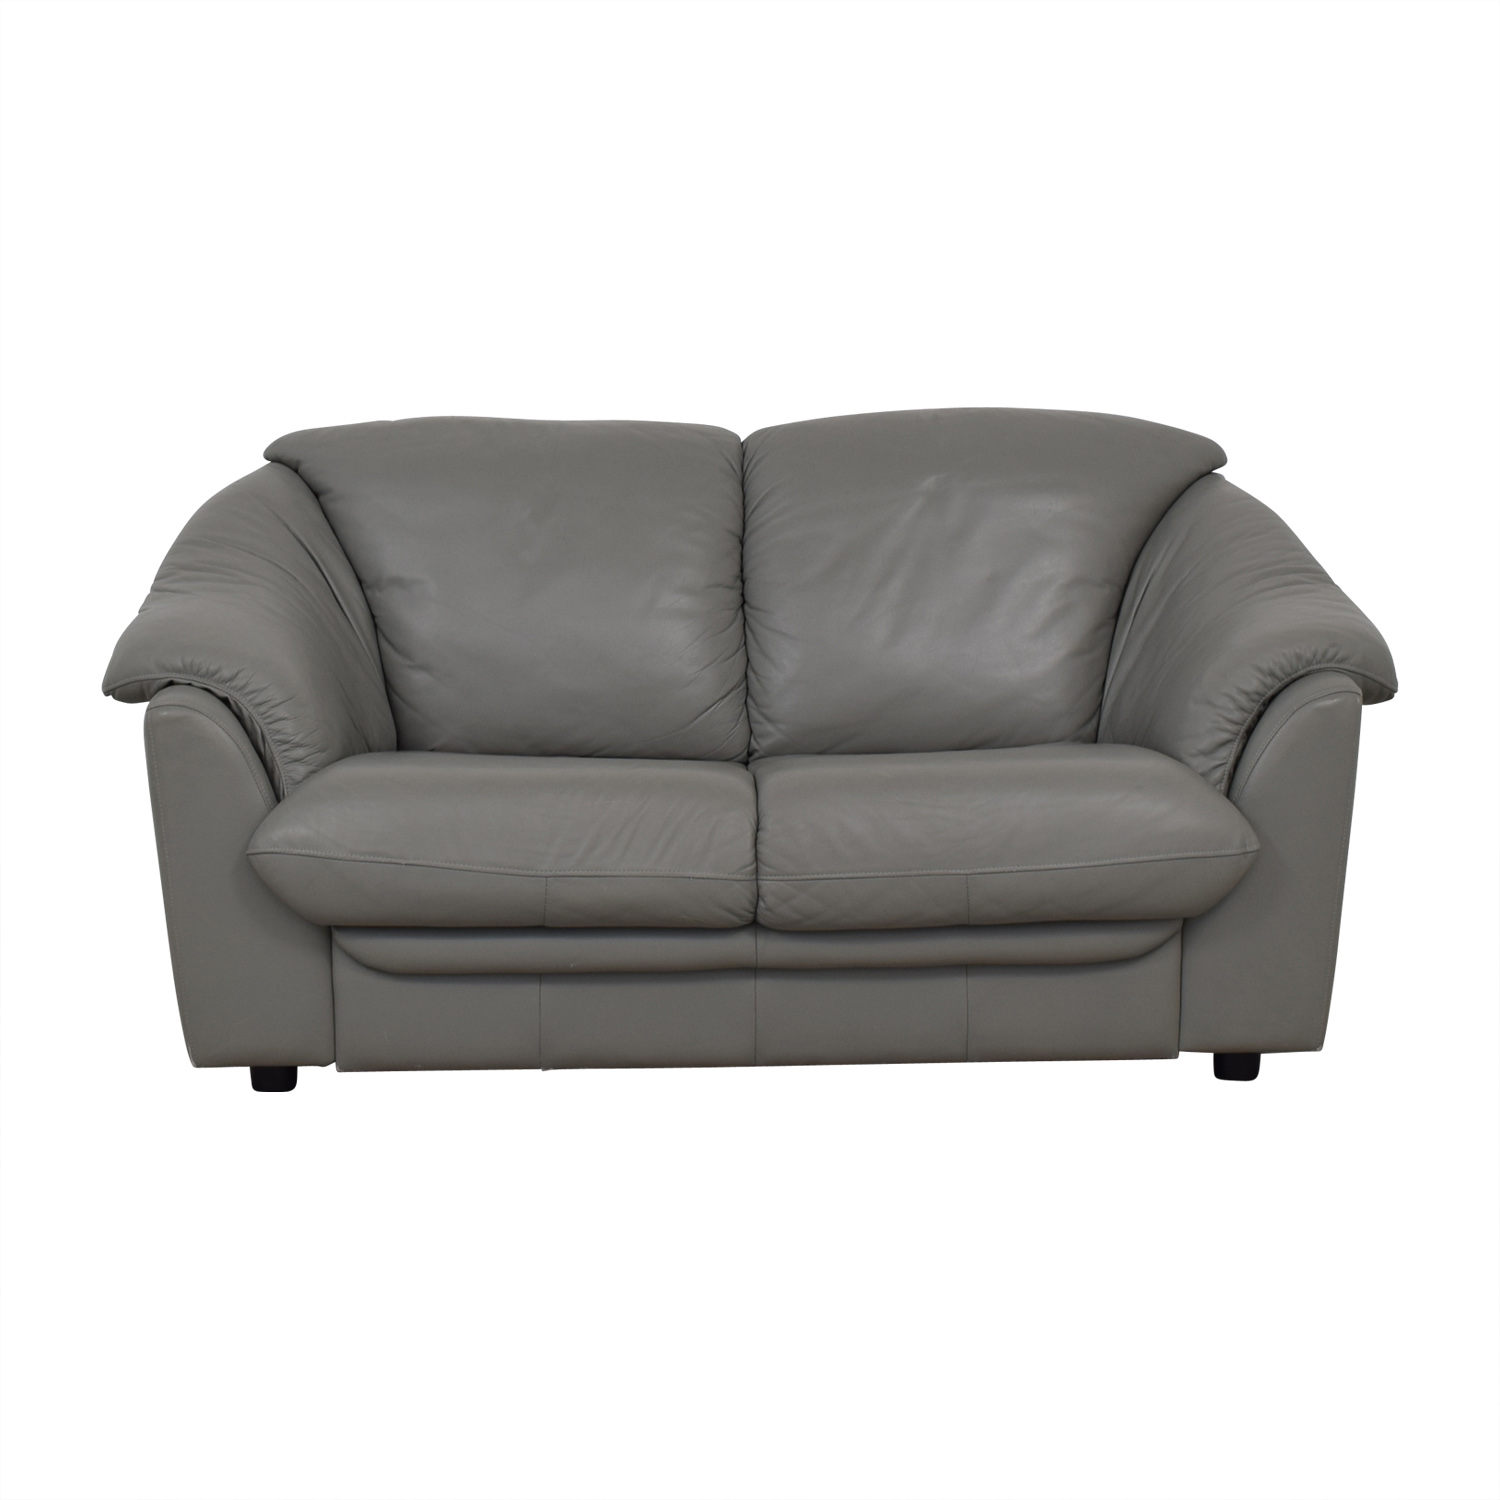 Italian Grey Two-Cushion Loveseat on sale